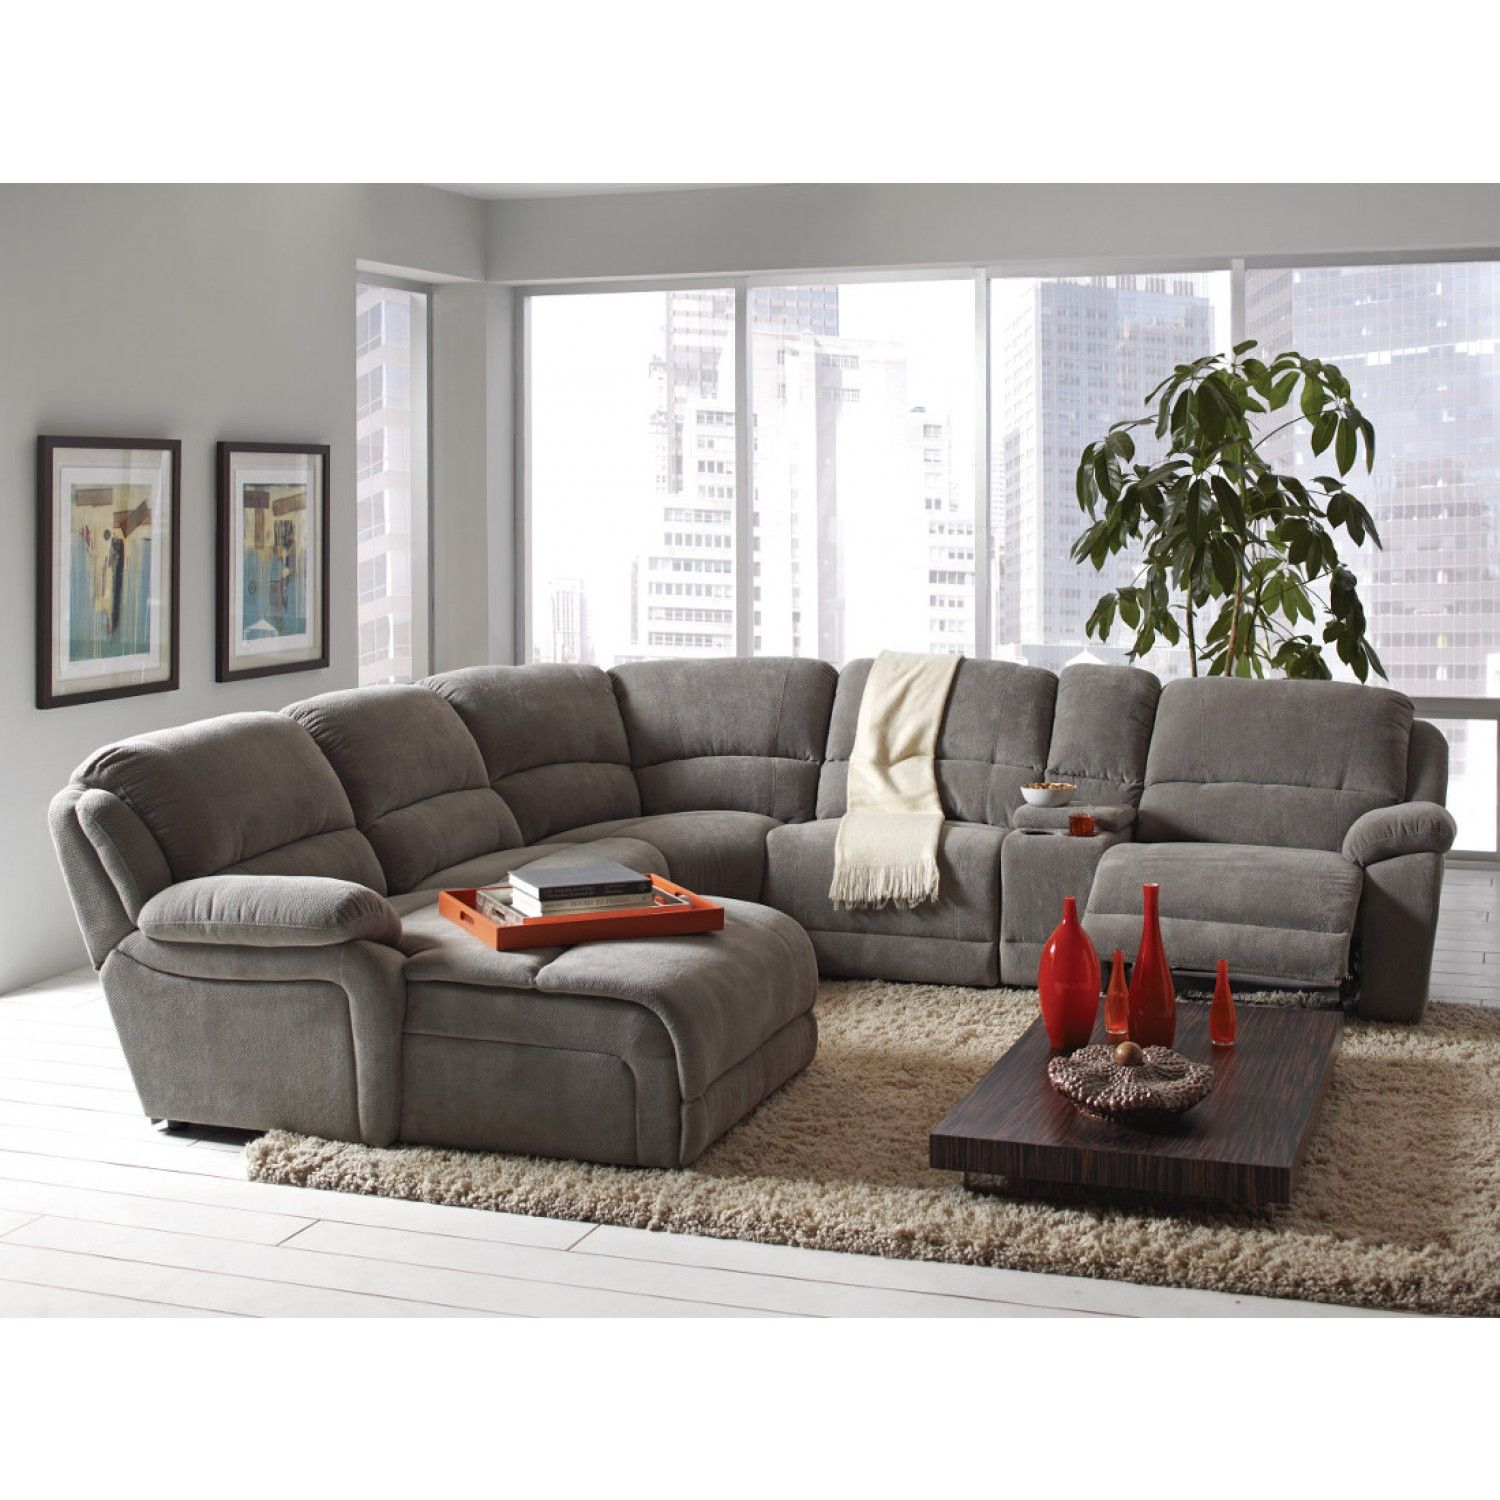 leon s mackenzie sofa billige sofaer online coaster silver 6 piece reclining sectional with casual style